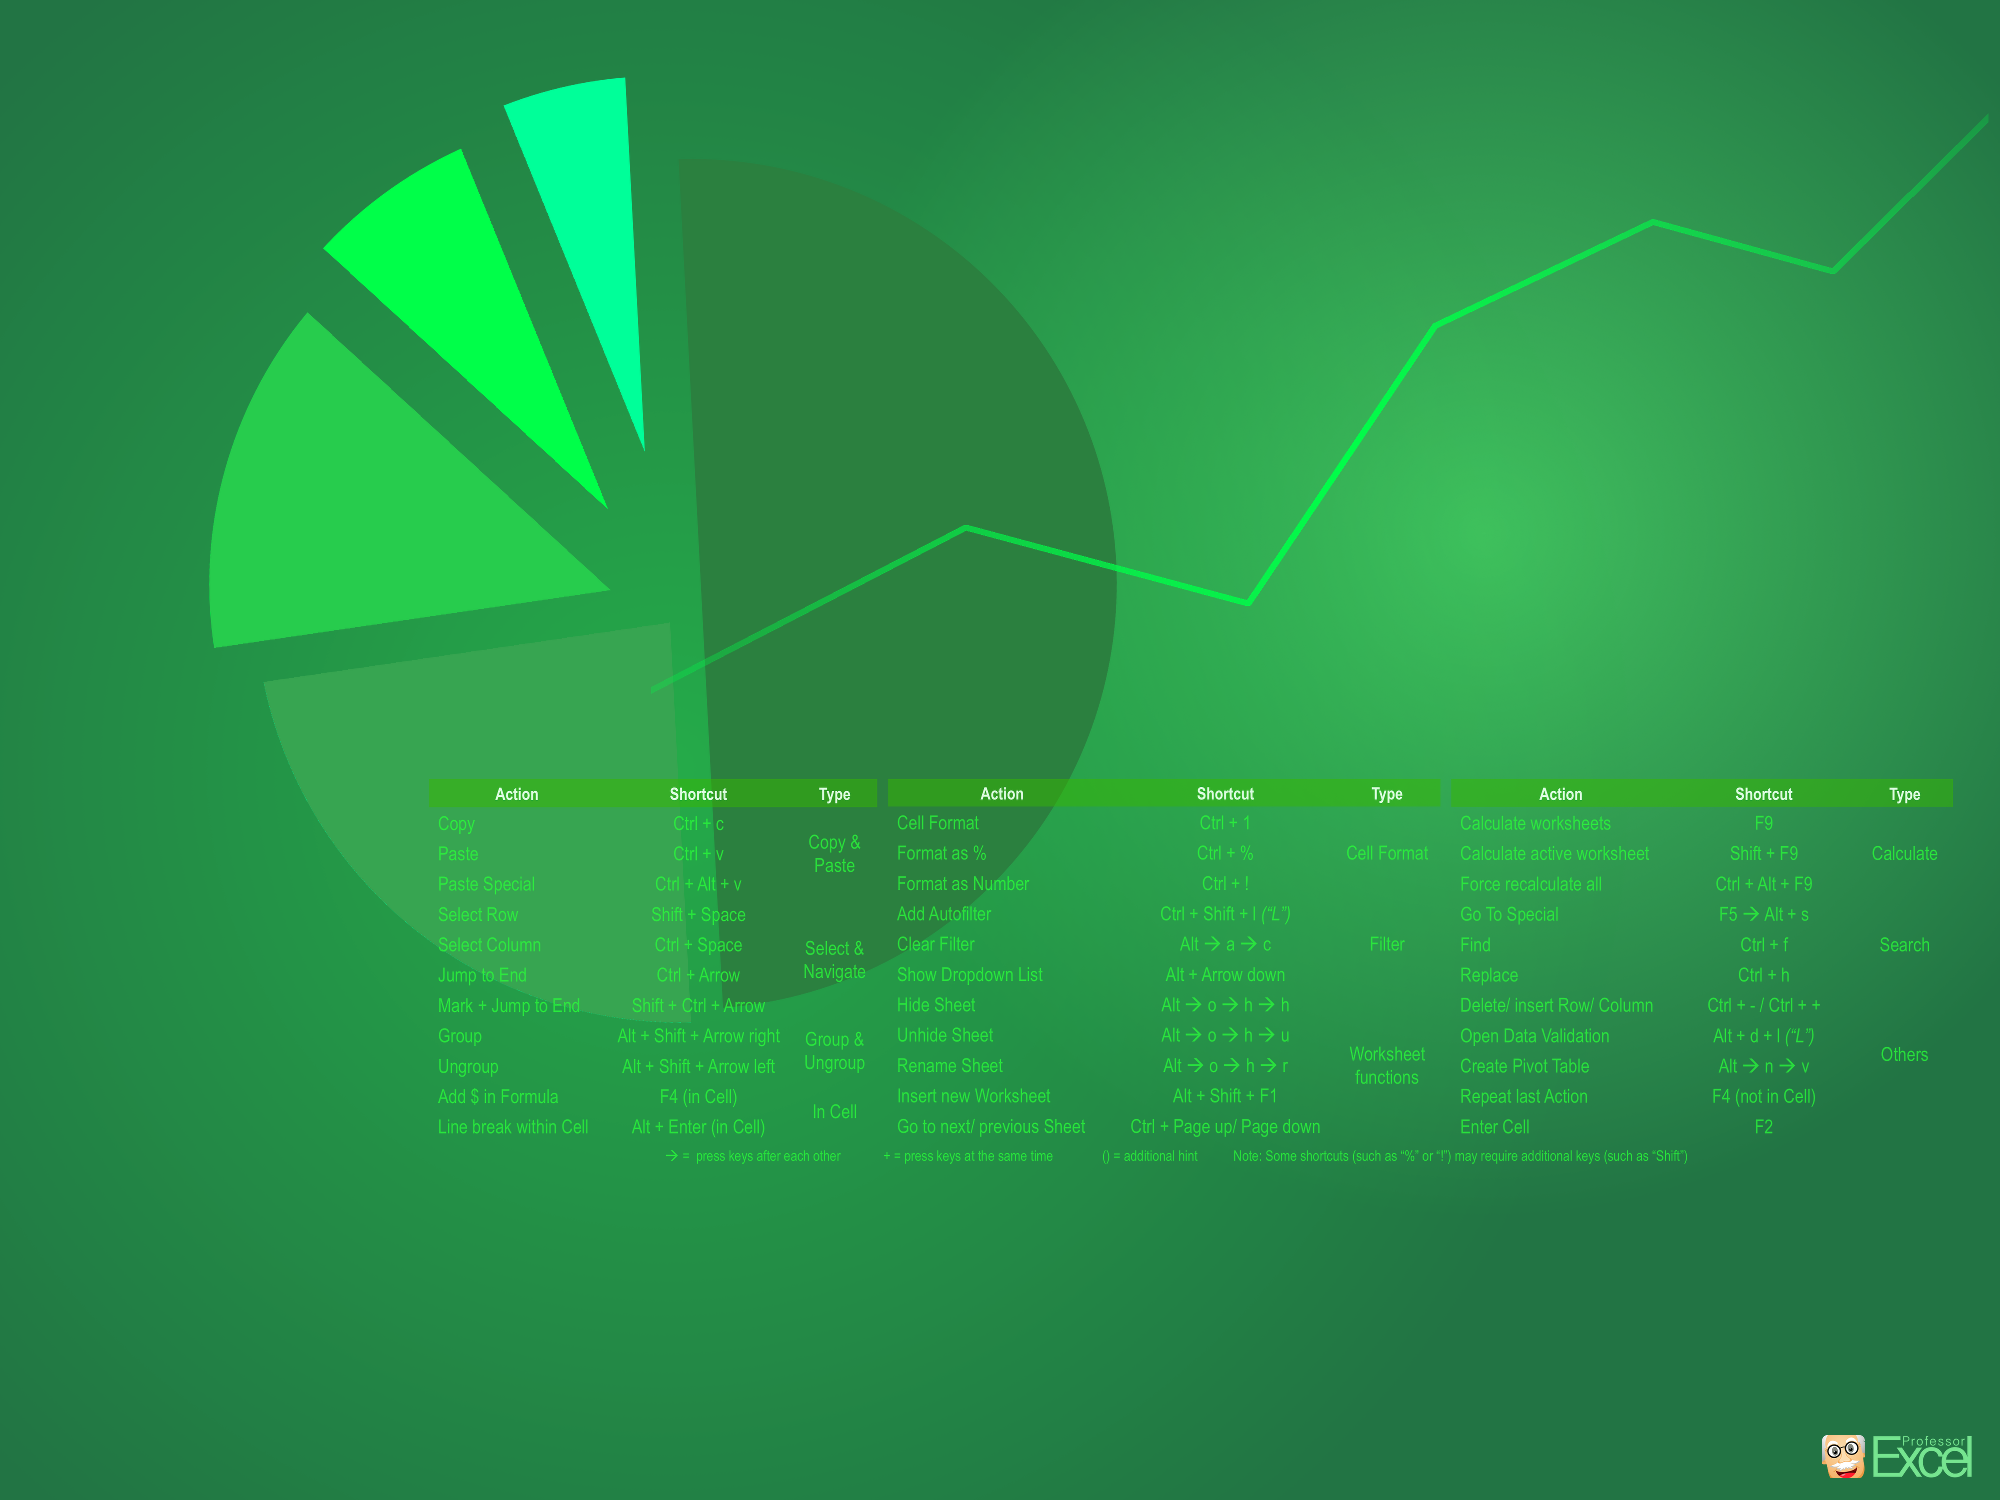 Excel Wallpaper for Free Download   Professor Excel   Professor Excel wallpaper  excel  graph  desktop  background  green